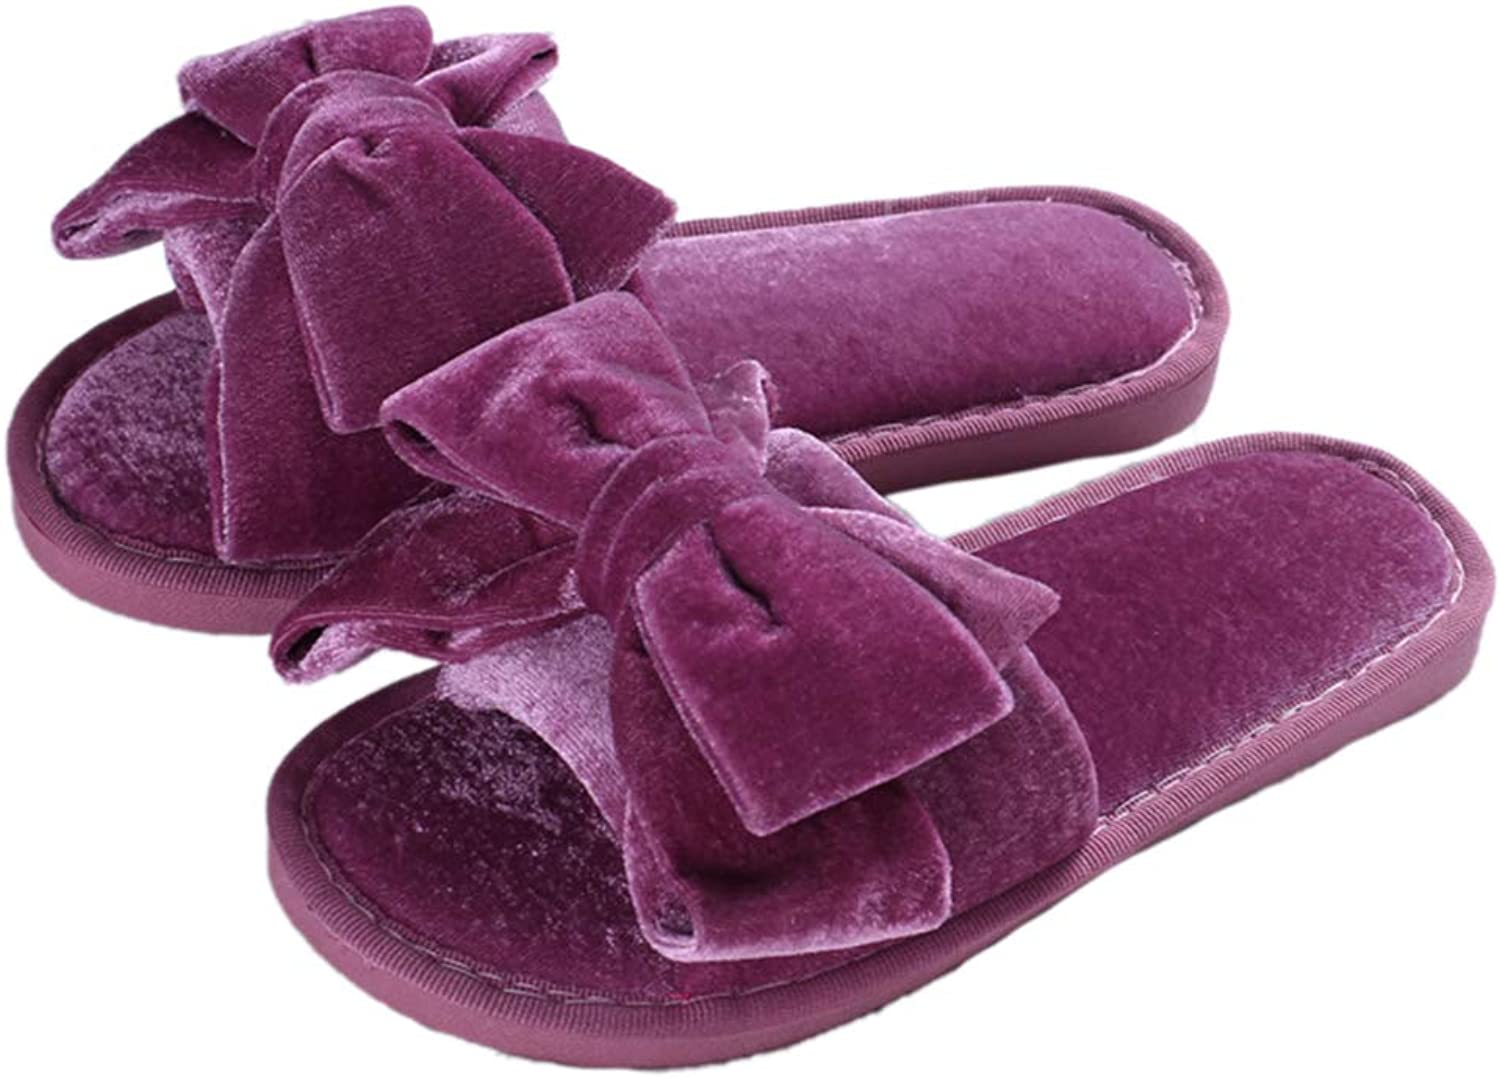 Winter Cute Slippers Bowknot Furry Flip Flops Sweet Ladies Slip On Fur Slides Plush Flat Home shoes